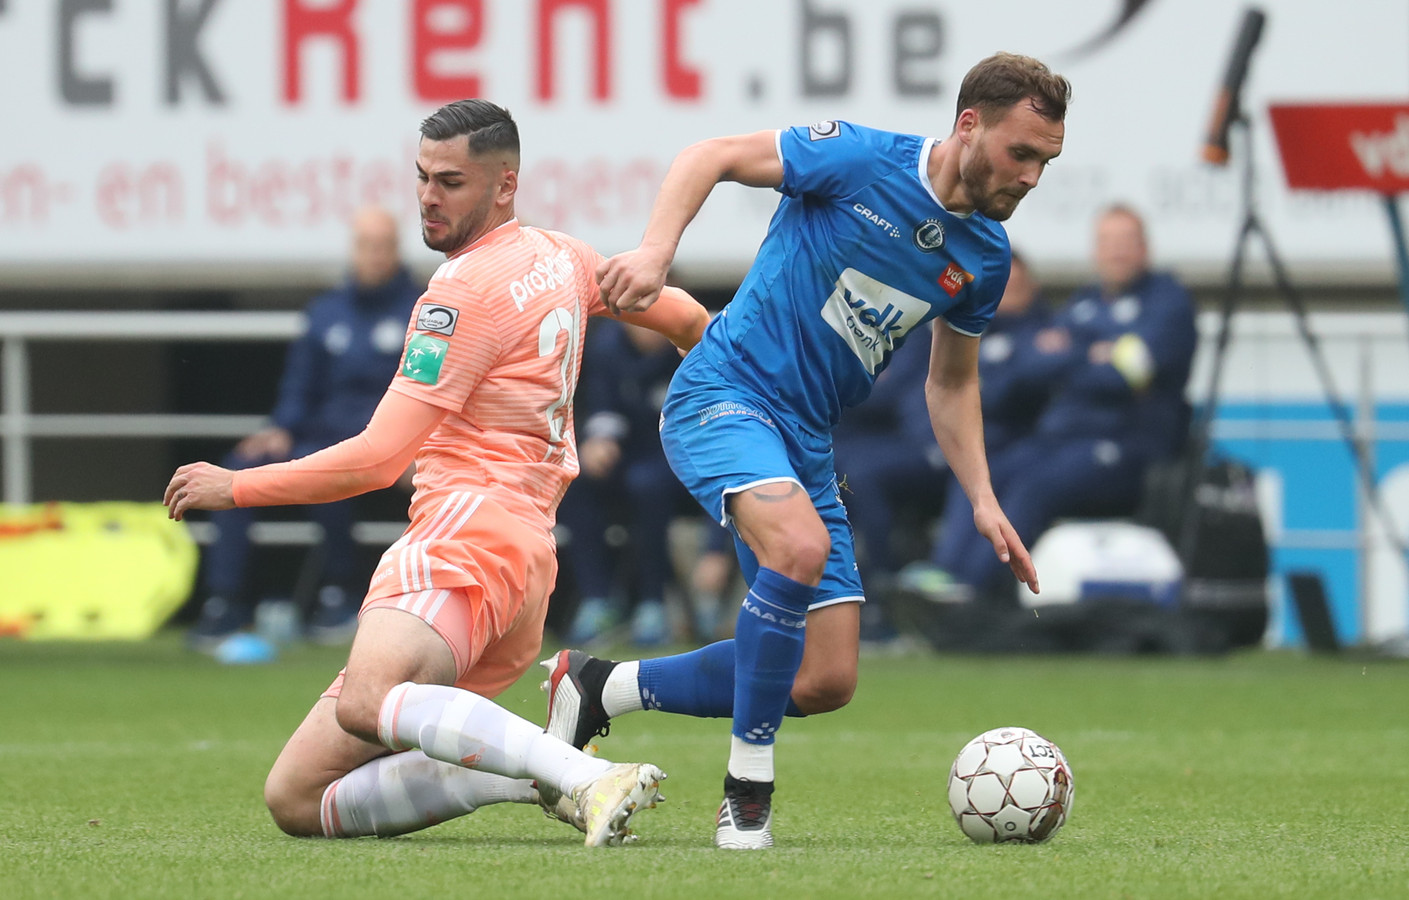 Anderlecht's Elias Cobbaut and Gent's Birger Verstraete fight for the ball during a soccer match between KAA Gent and RSC Anderlecht, Sunday 19 May 2019 in Gent, on the tenth and last day of the Play-off 1 of the 'Jupiler Pro League' Belgian soccer championship. BELGA PHOTO VIRGINIE LEFOUR